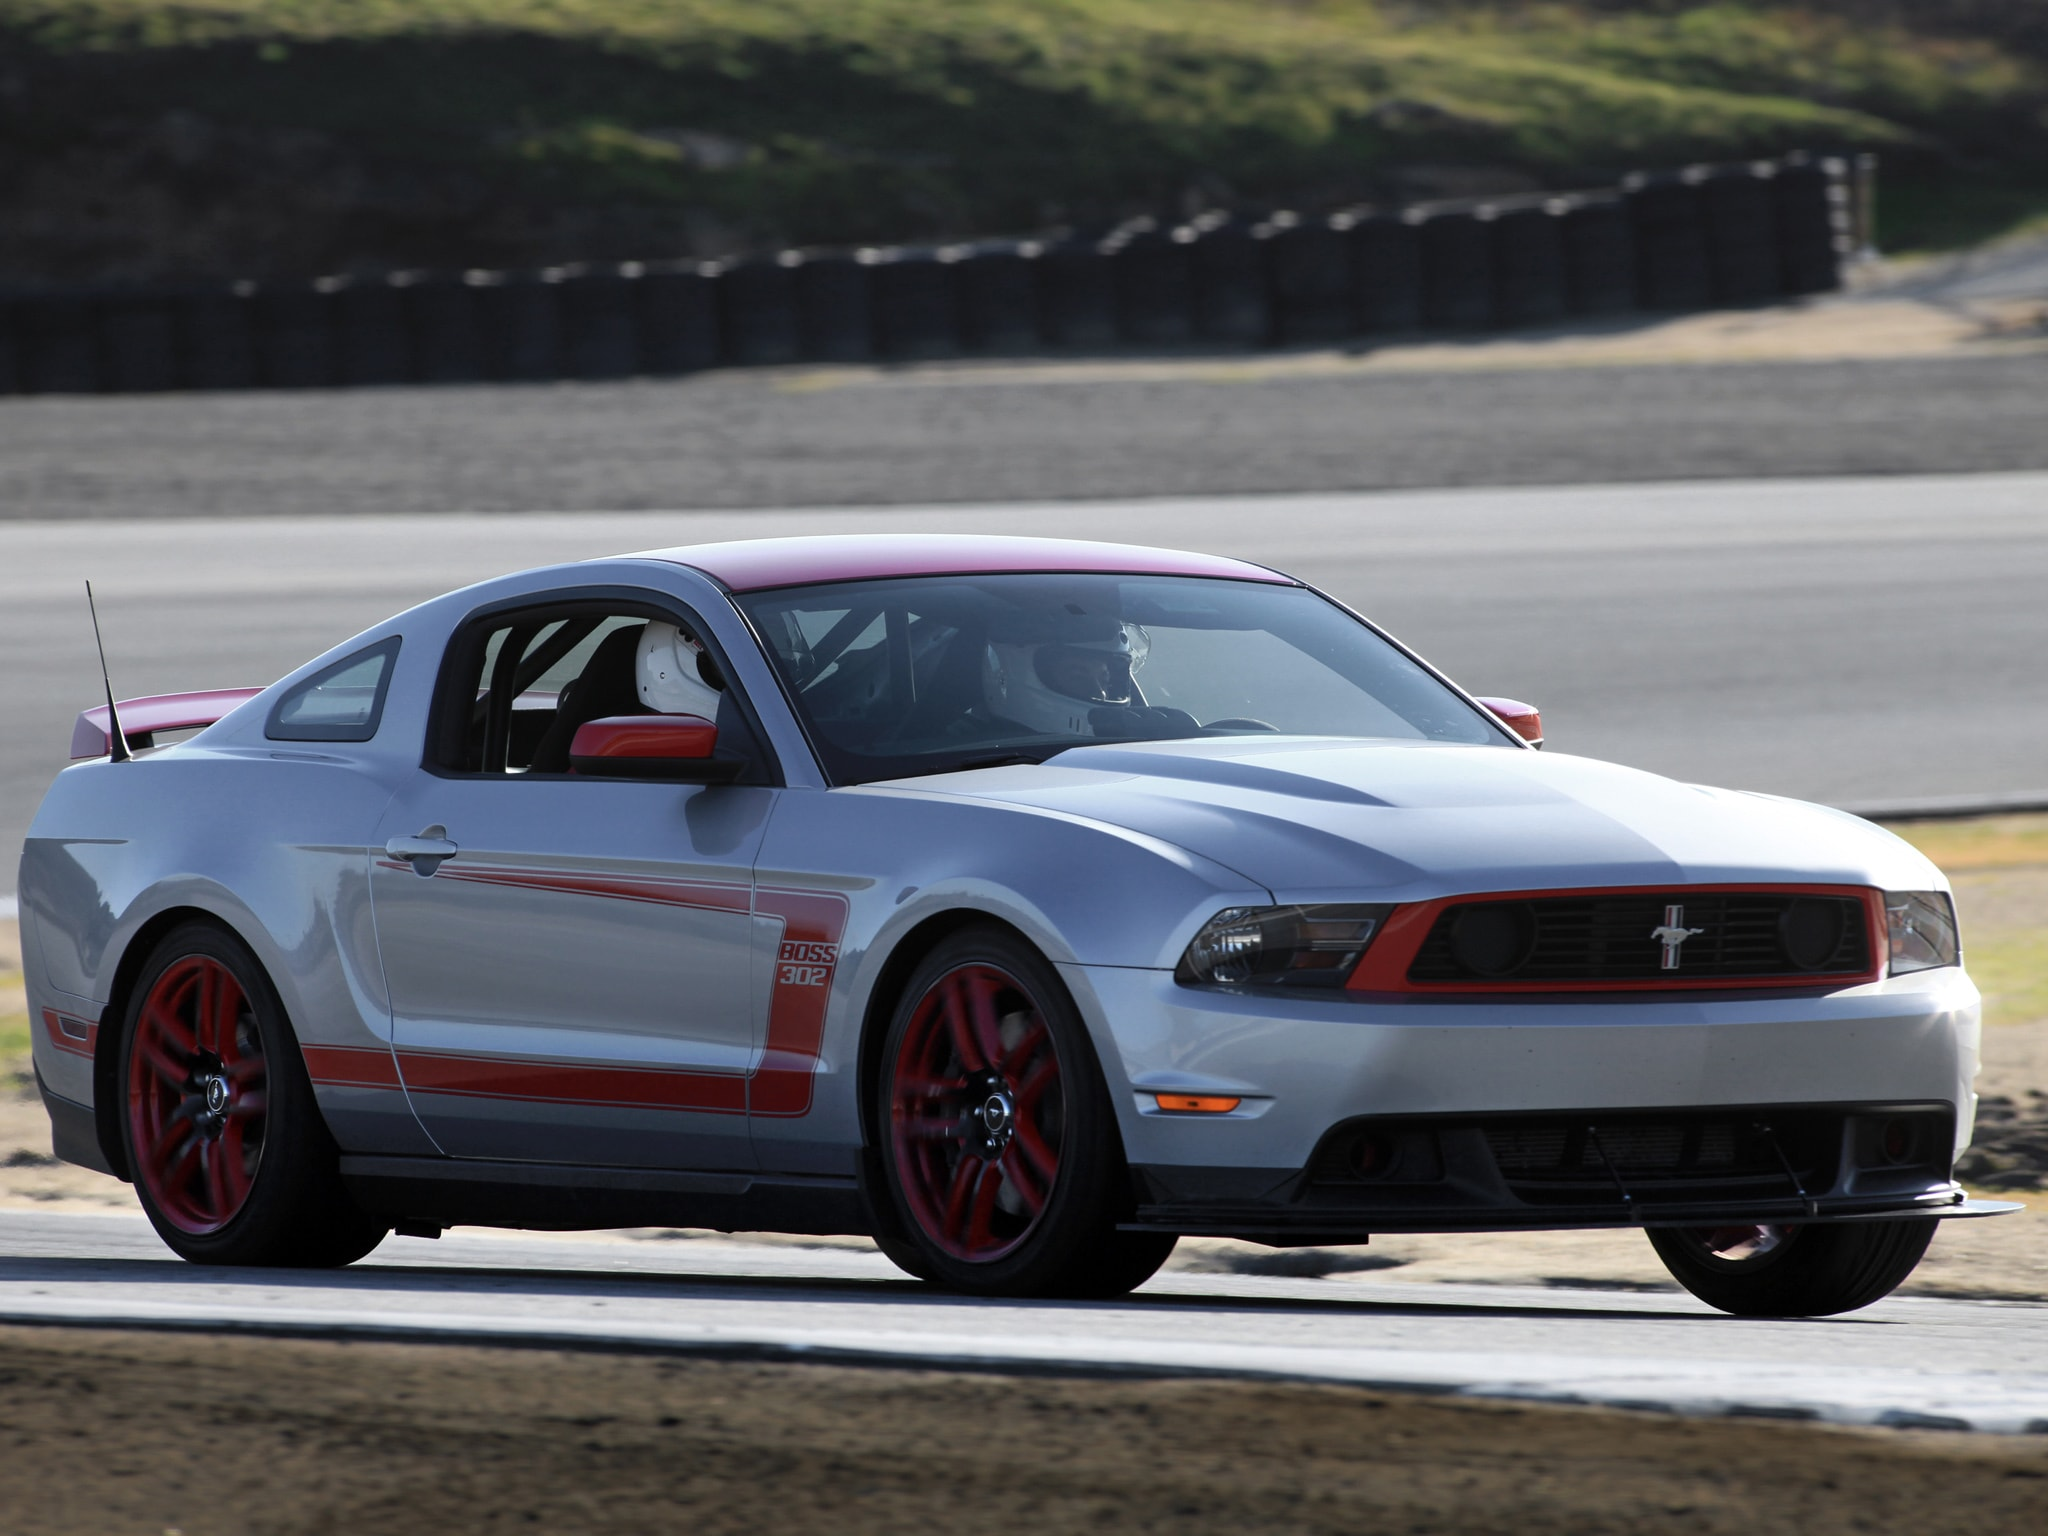 Ford Mustang Boss 302 Laguna Seca HD pictures